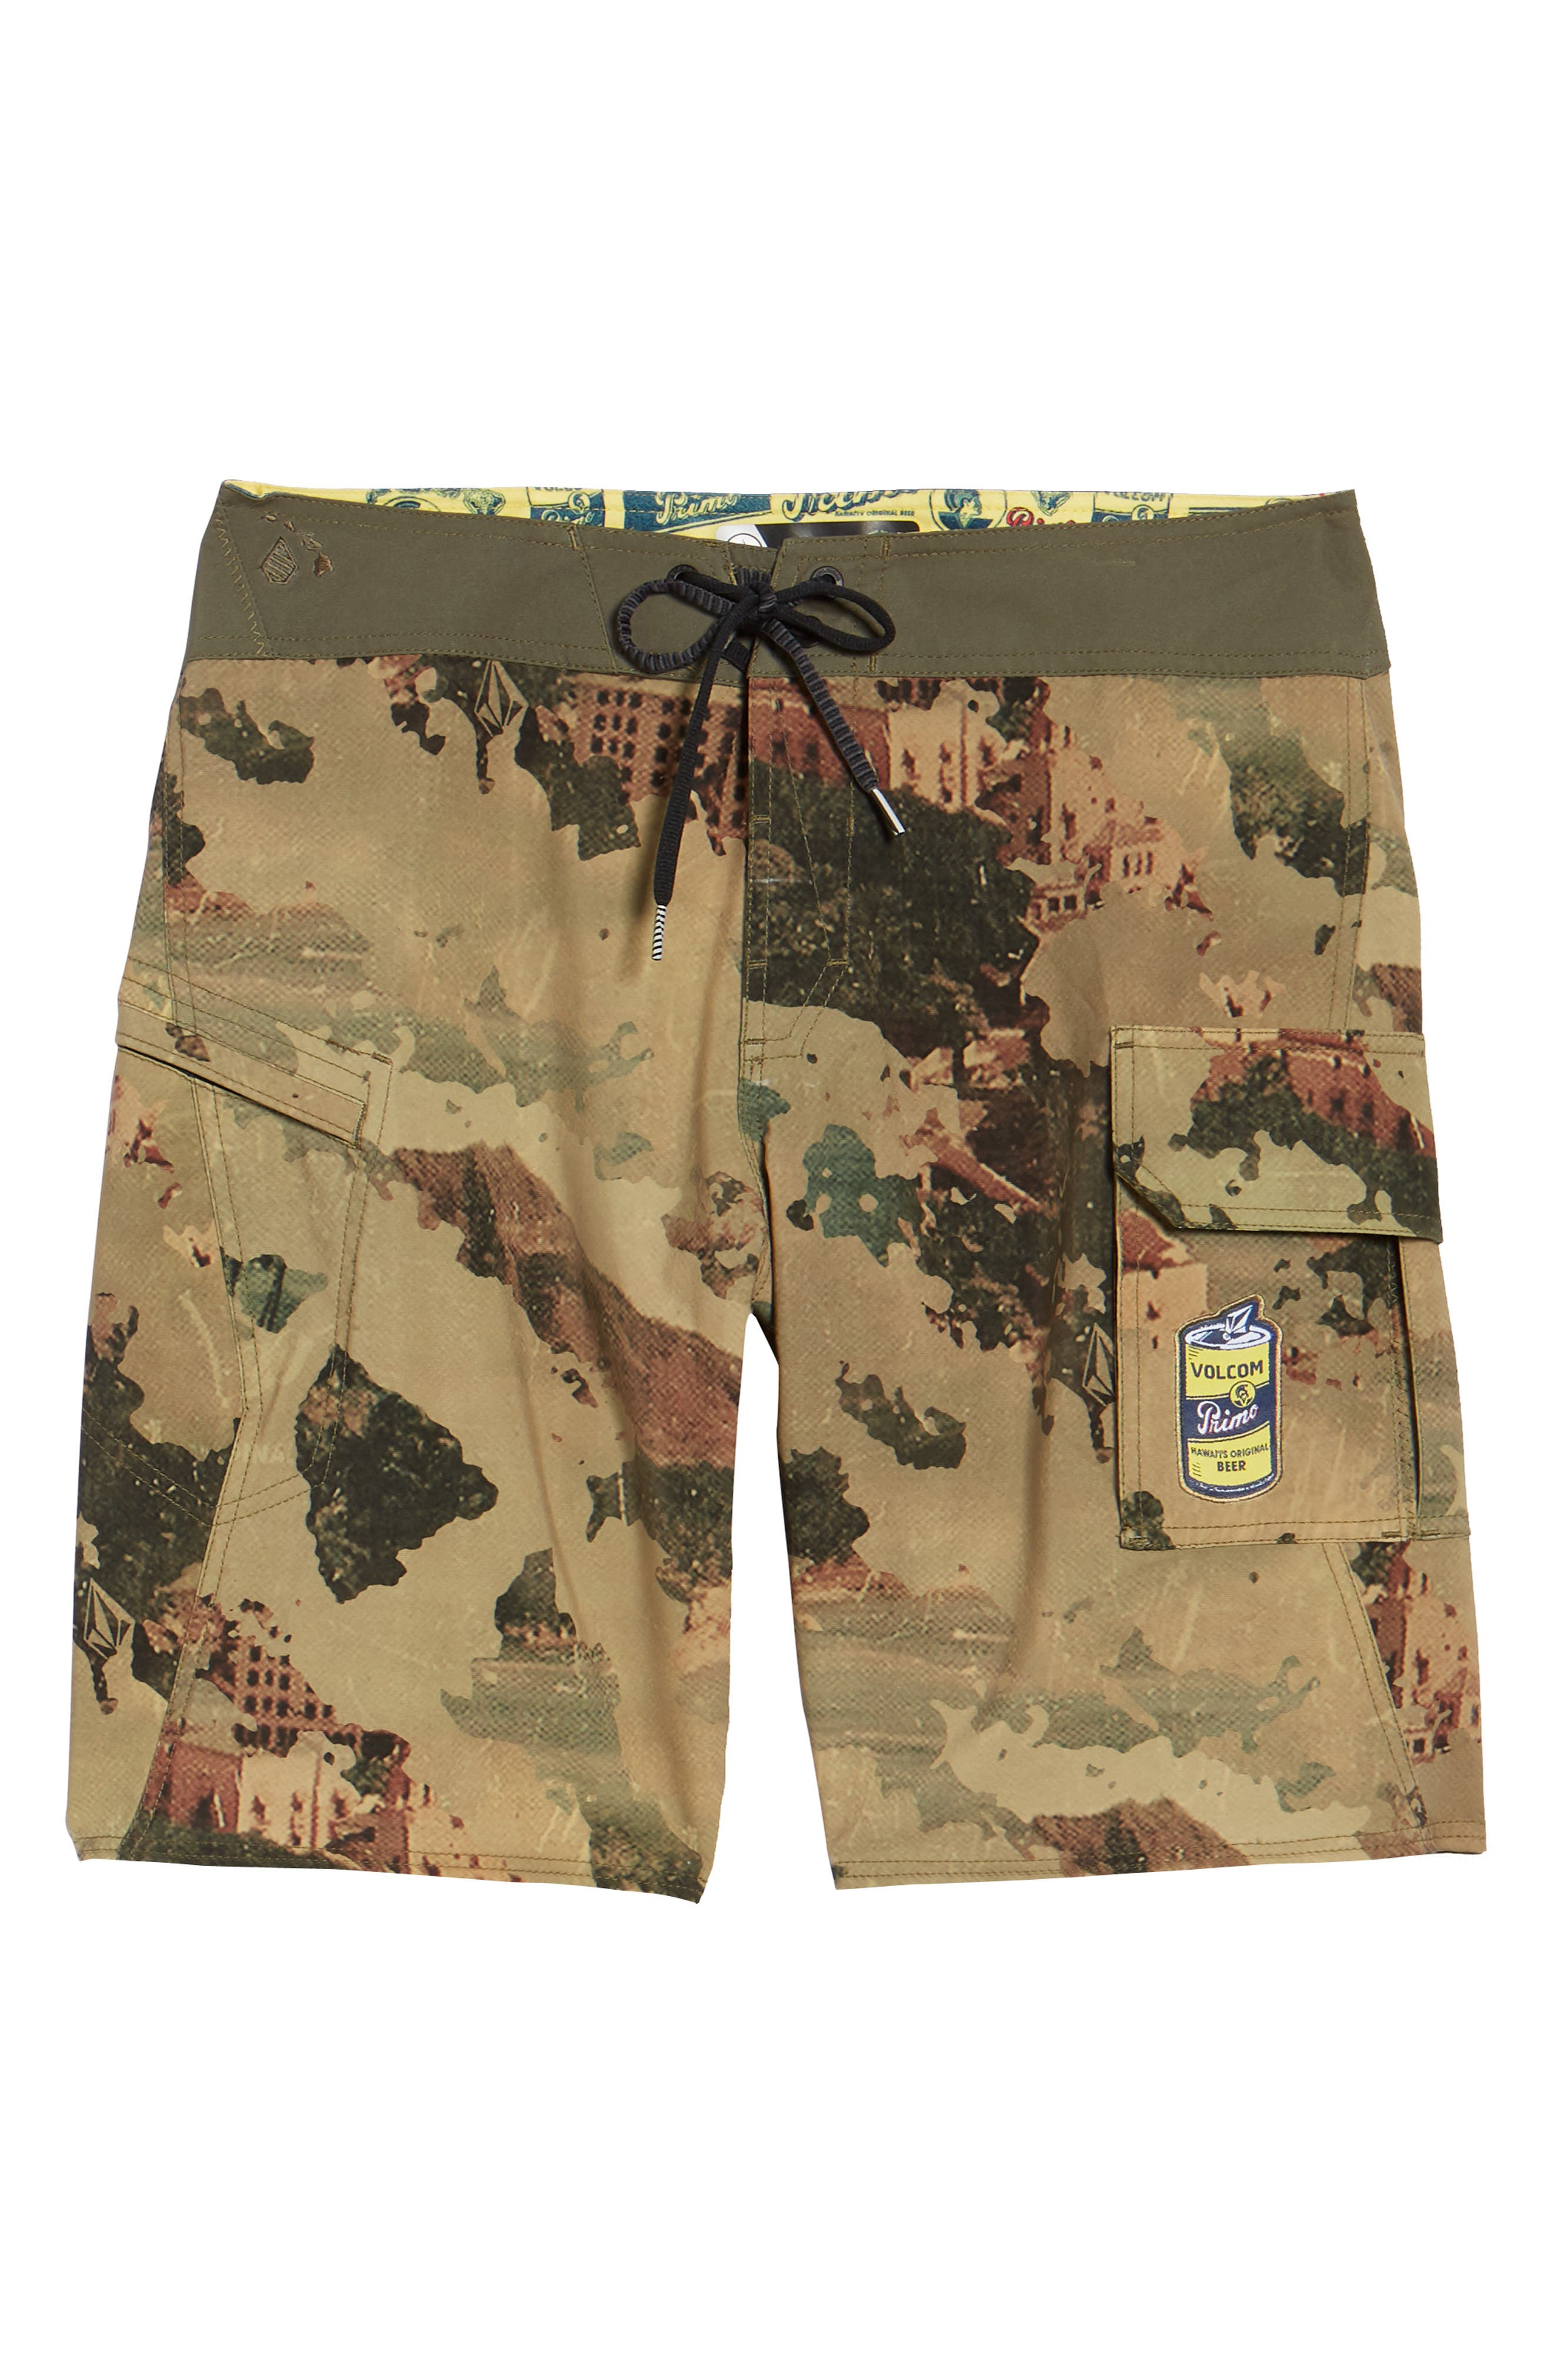 Primo Beer Board Shorts,                             Alternate thumbnail 6, color,                             Camouflage